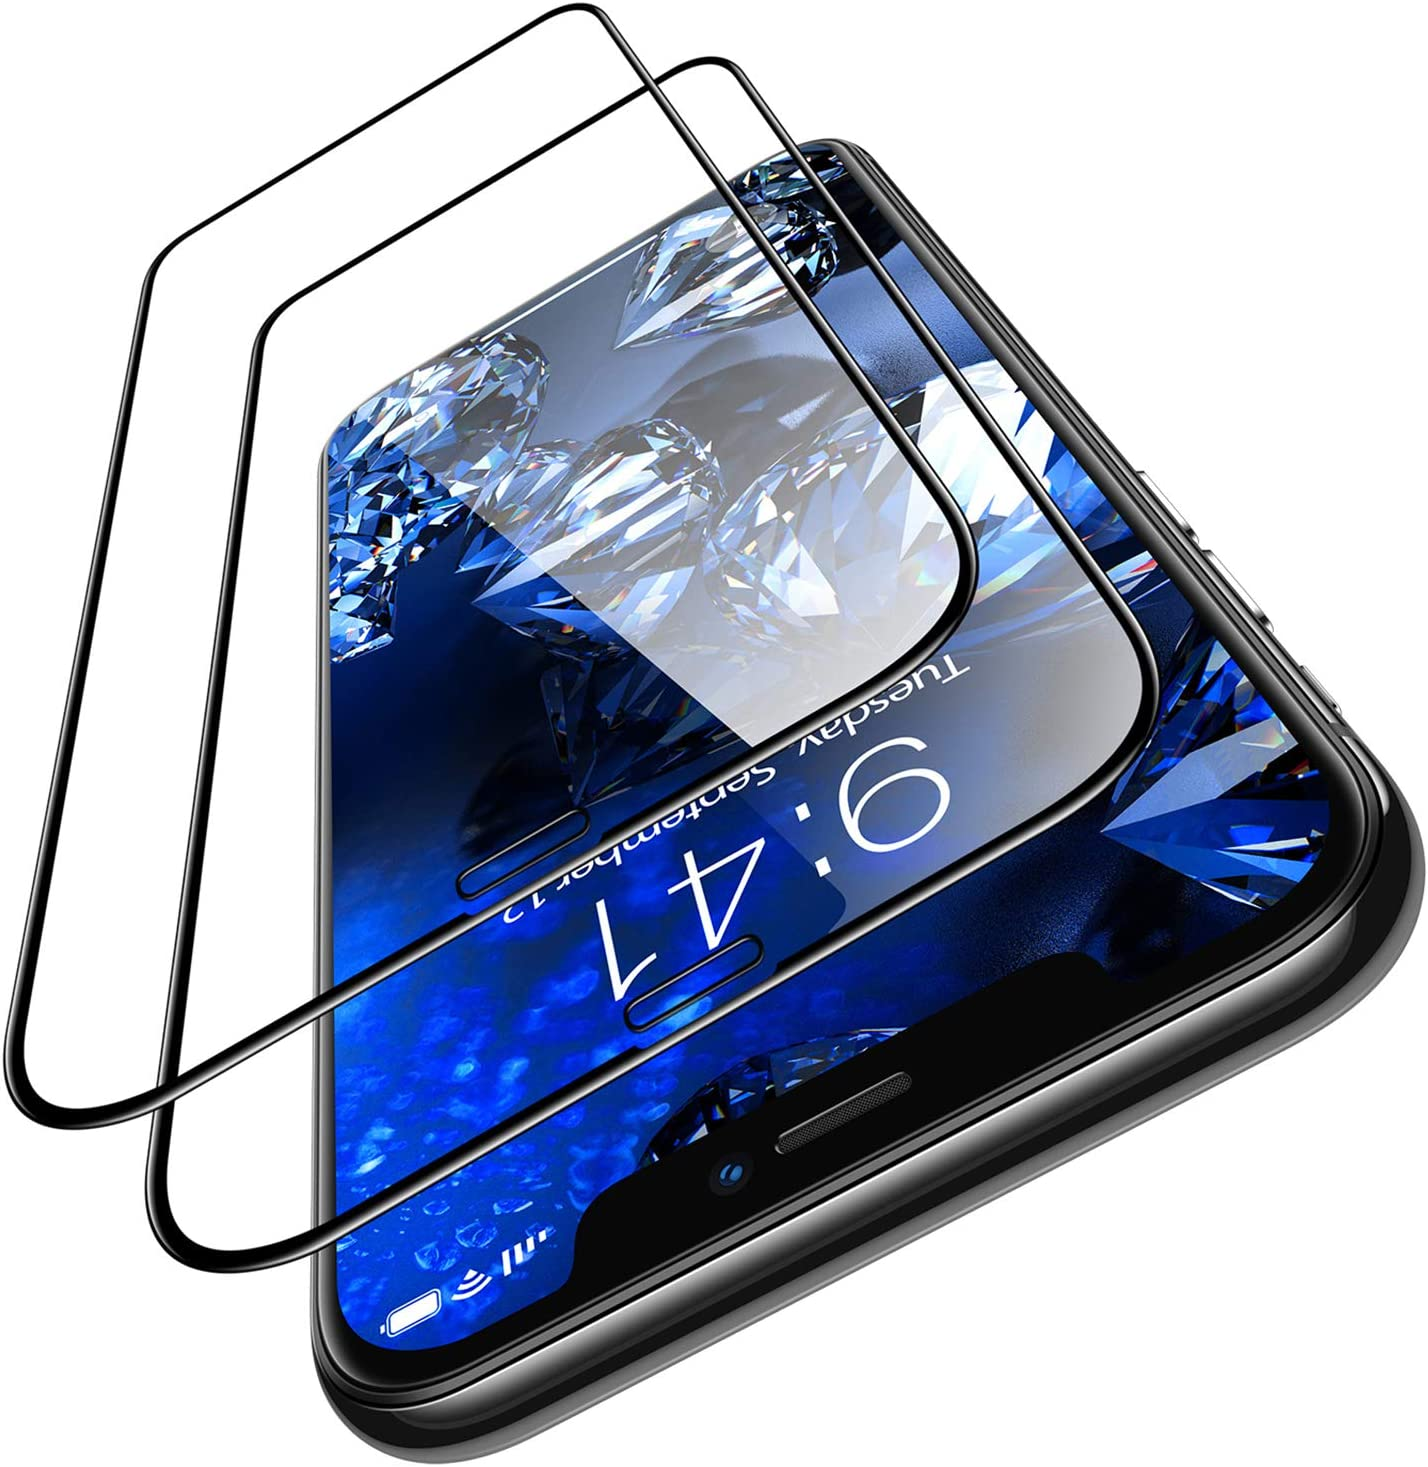 TORRAS Diamonds Hard Designed for iPhone 11 Pro Max Screen Protector [Military Grade Shatterproof] iPhone Xs Max Screen Protector, Clear Shockproof Tempered Glass Film Designed for Apple 6.5''-2 Pack